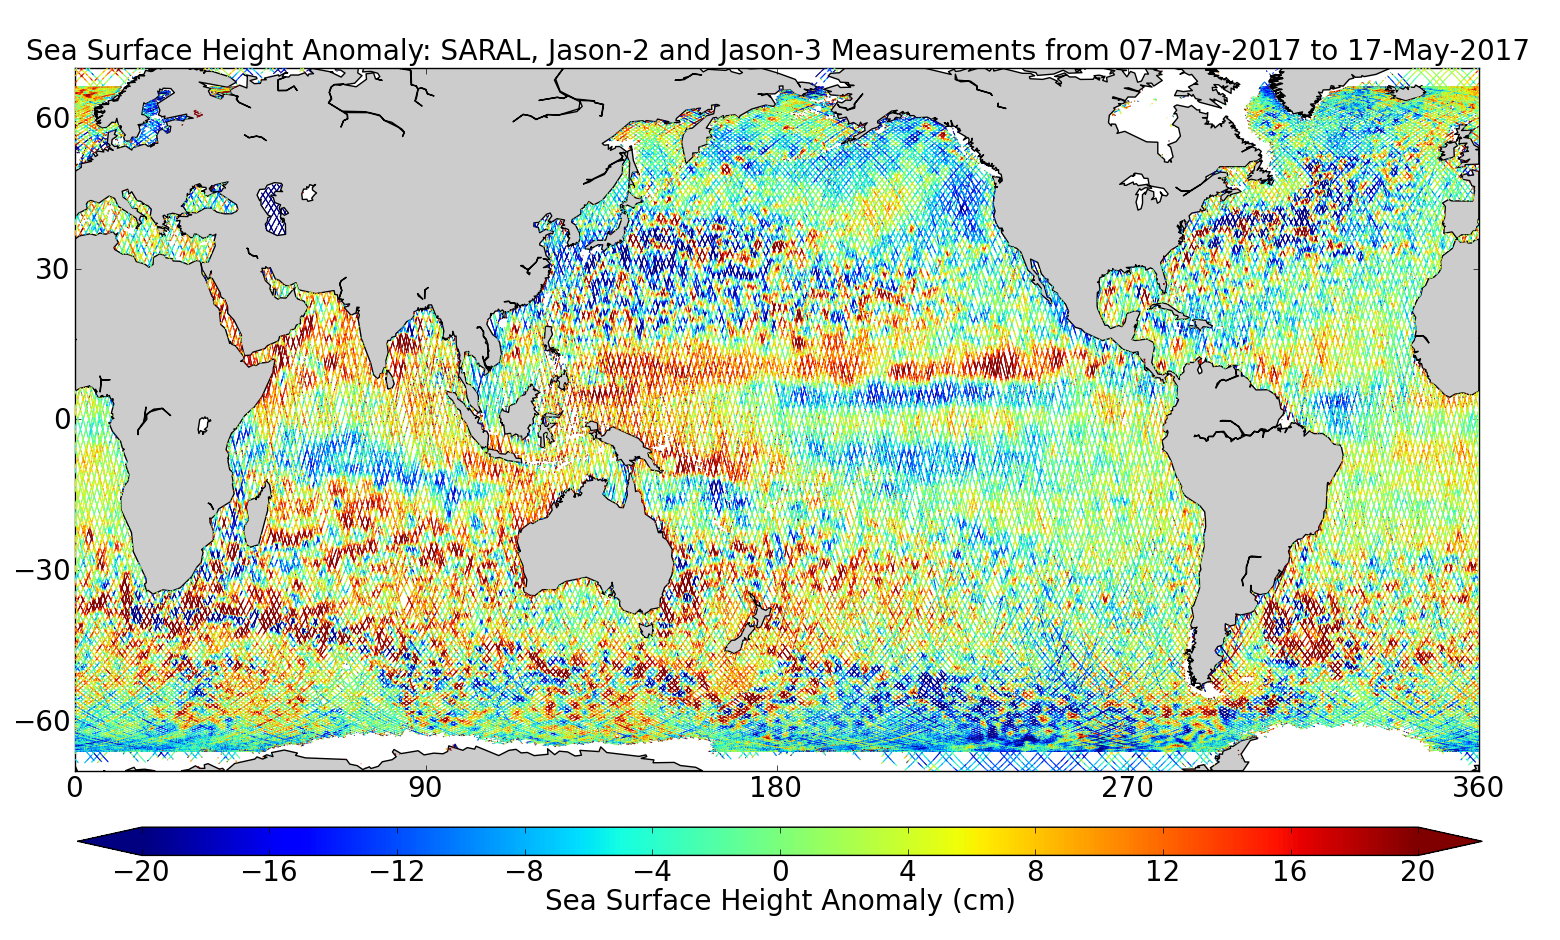 Sea Surface Height Anomaly: SARAL, Jason-2 and Jason-3 Measurements from 07-May-2017 to 17-May-2017